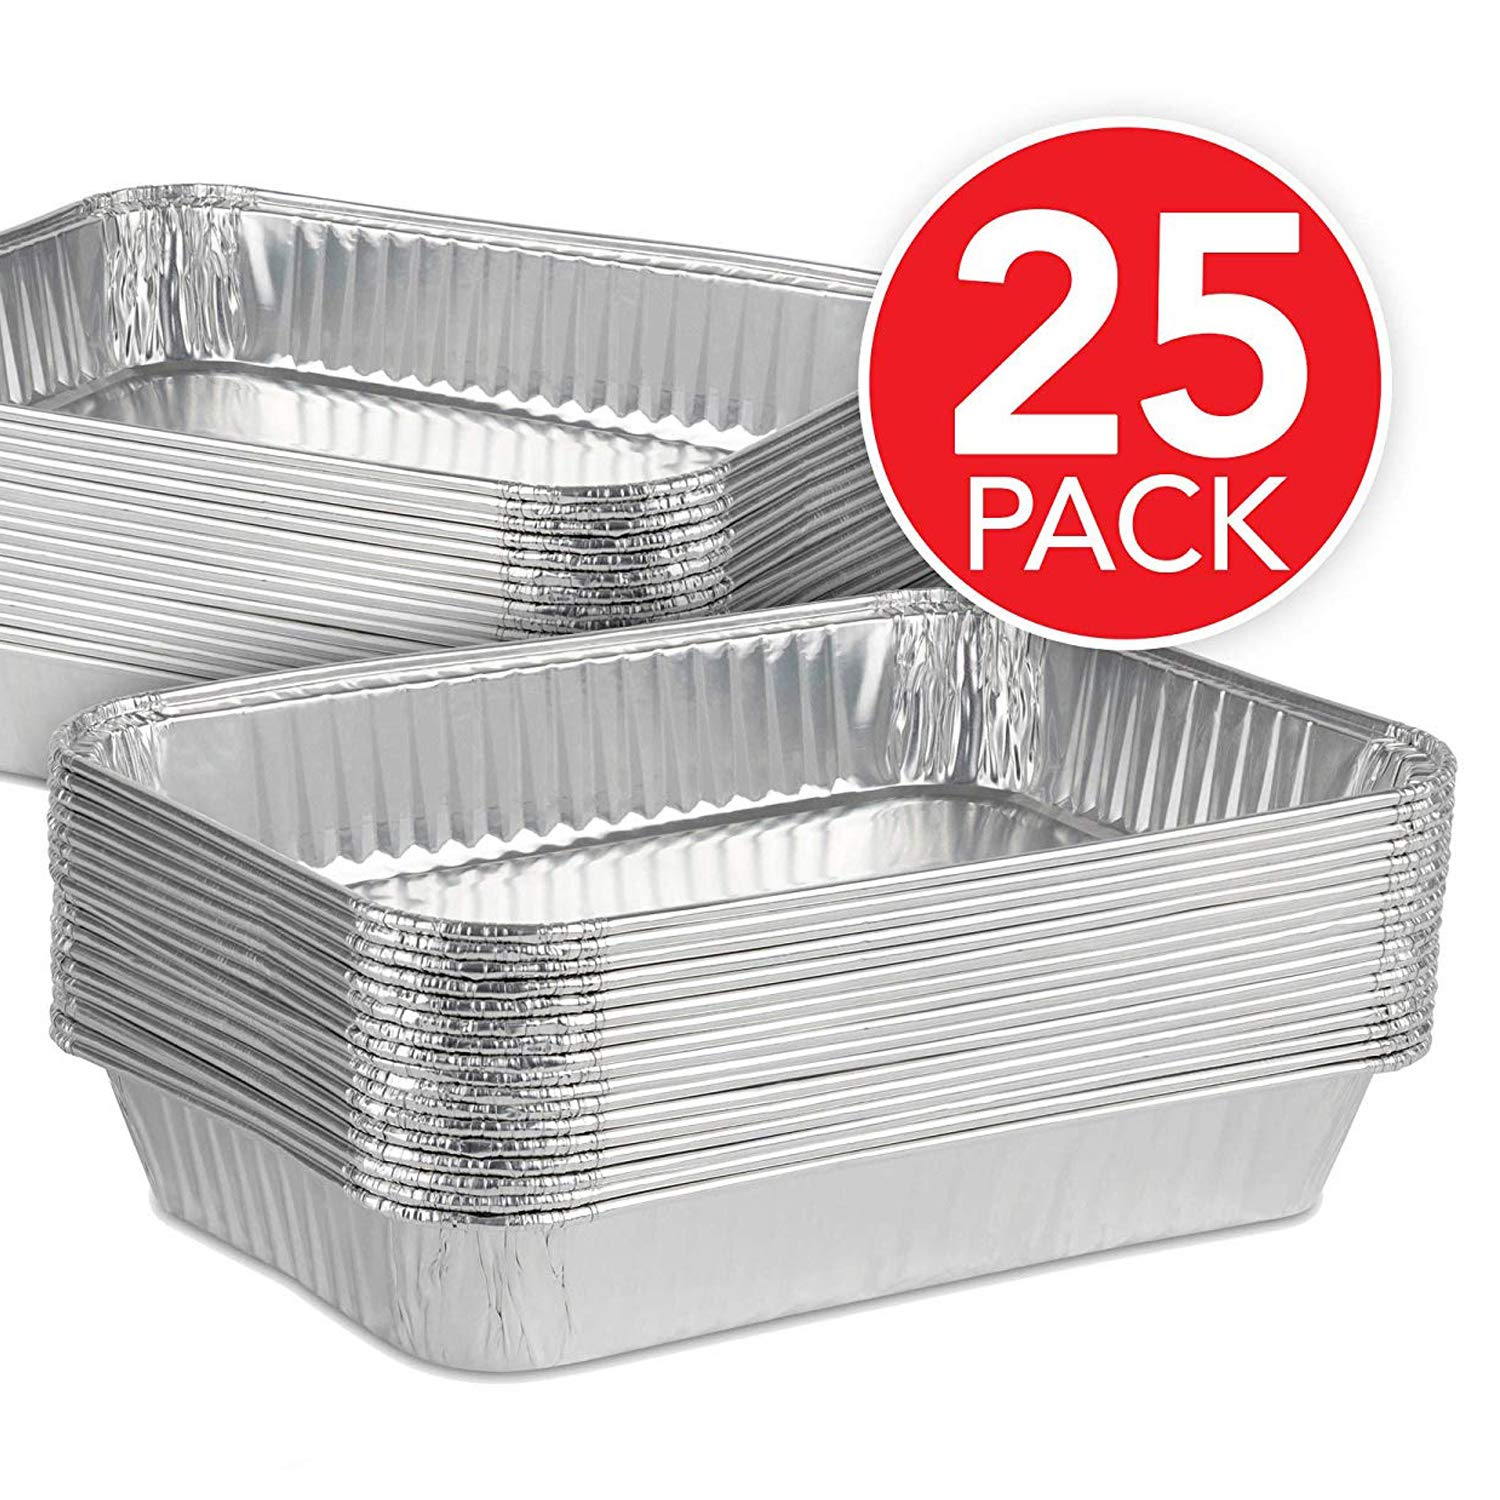 Aluminum Foil Drip Pans (25 Pack) Grill Compatible Drip Pans - Disposable Grease Catch Trays - Grill Drip Pan Liners to Catch Grease - BBQ Drip Pan